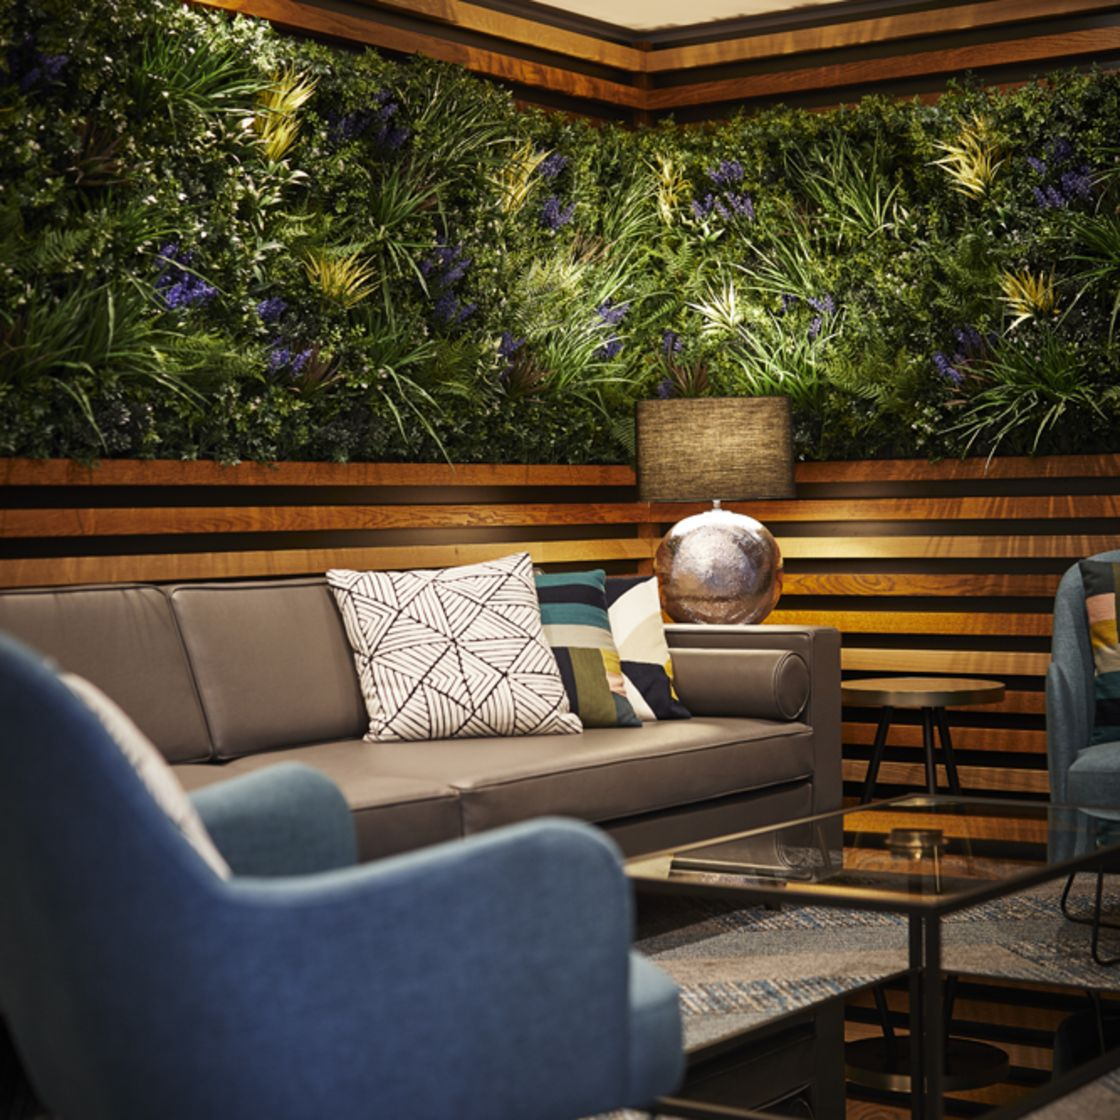 Reception Lounge with living wall. IconInc @ Roomzzz York. Student Accommodation in York